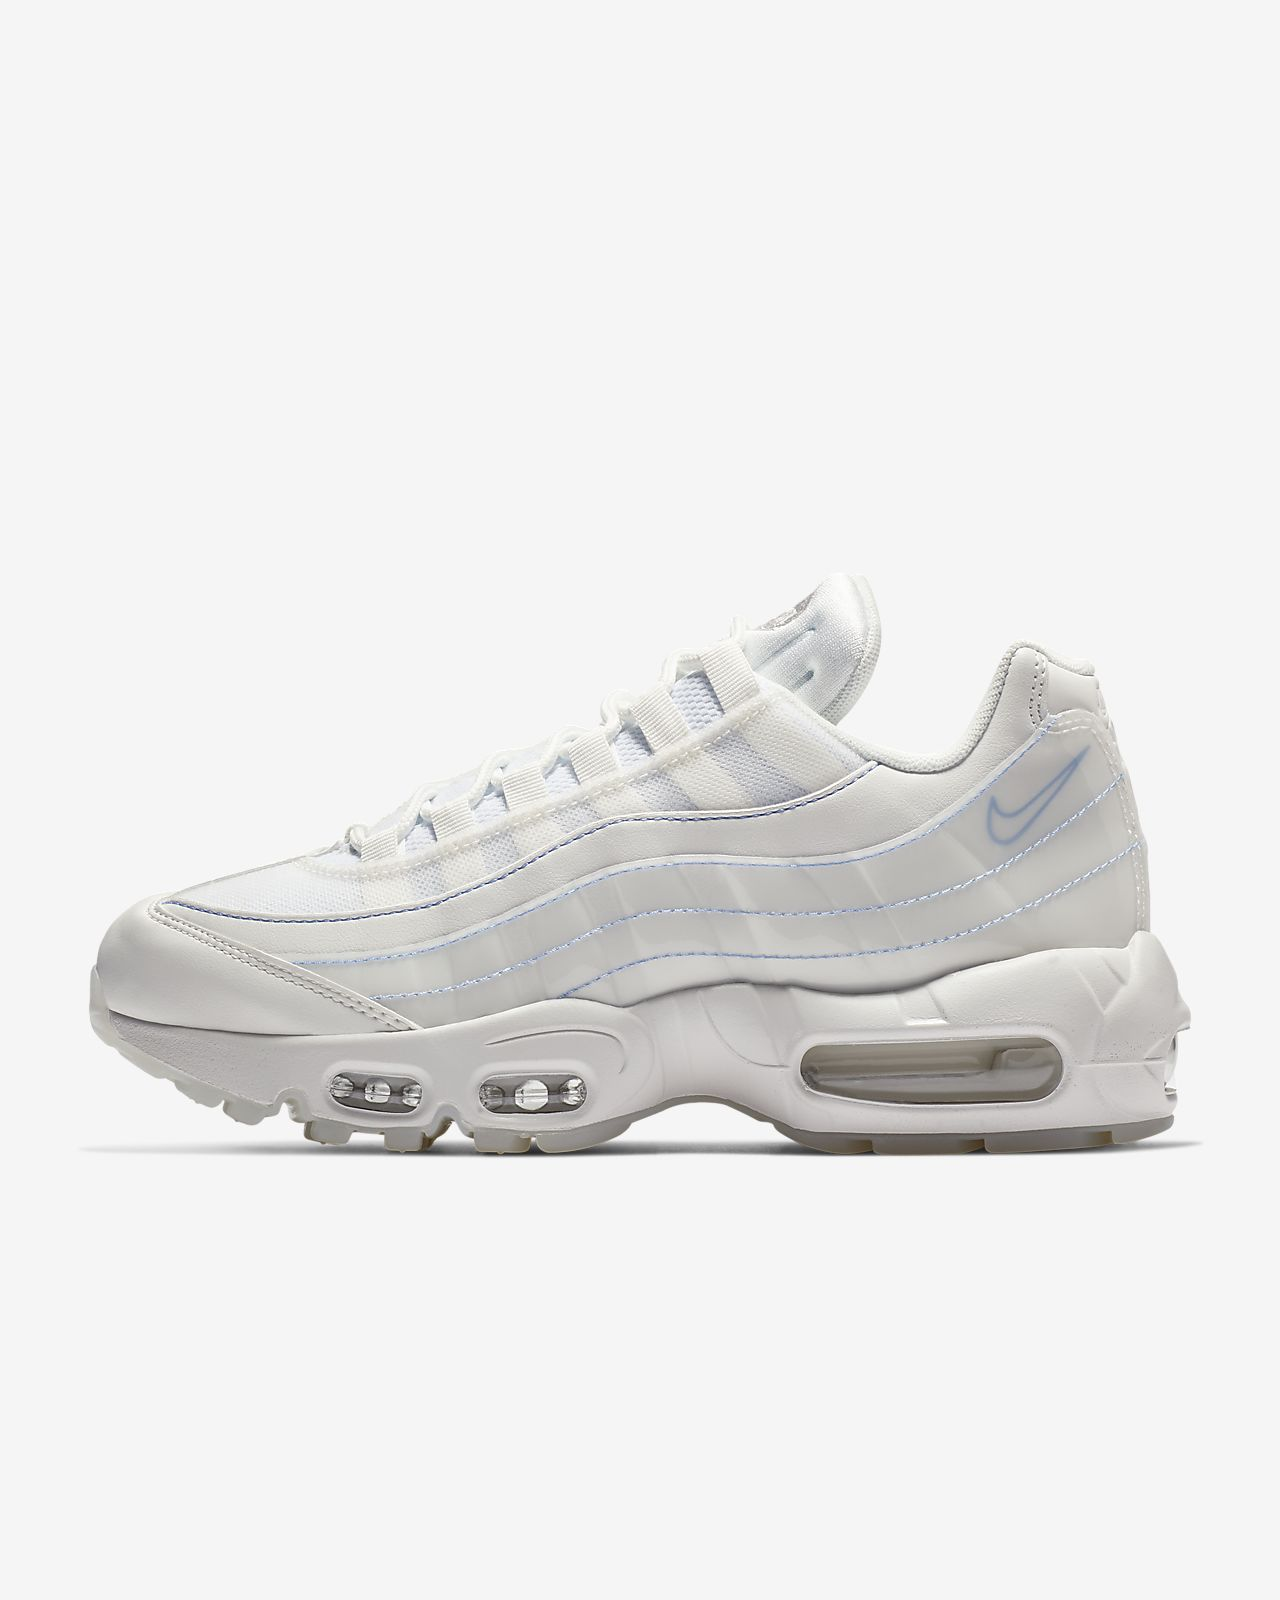 26d066e9c5 Nike Air Max 95 SE Women's Shoe. Nike.com